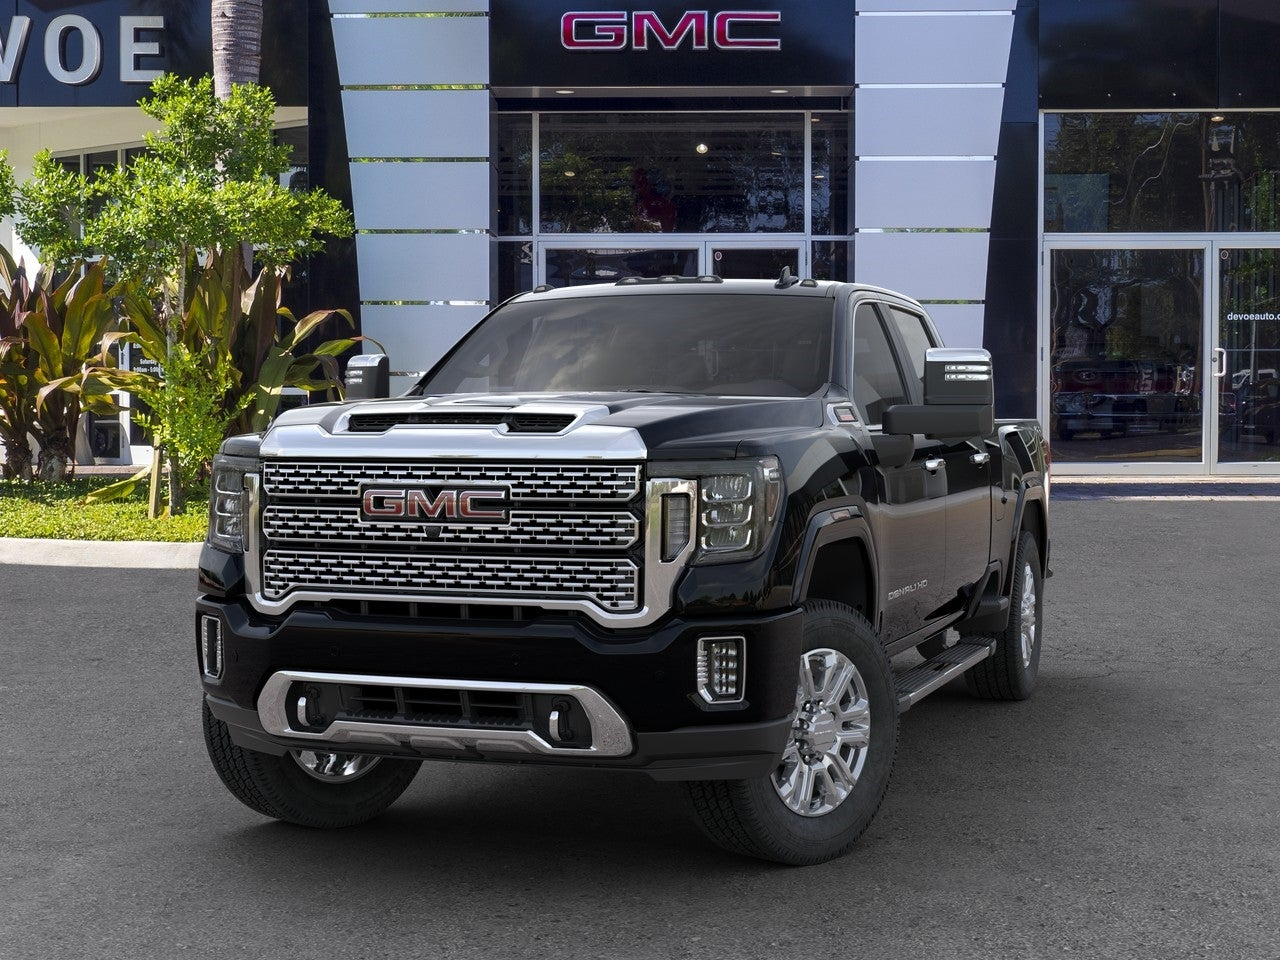 2020 GMC Sierra 2500 Crew Cab 4x4, Pickup #T20450 - photo 18